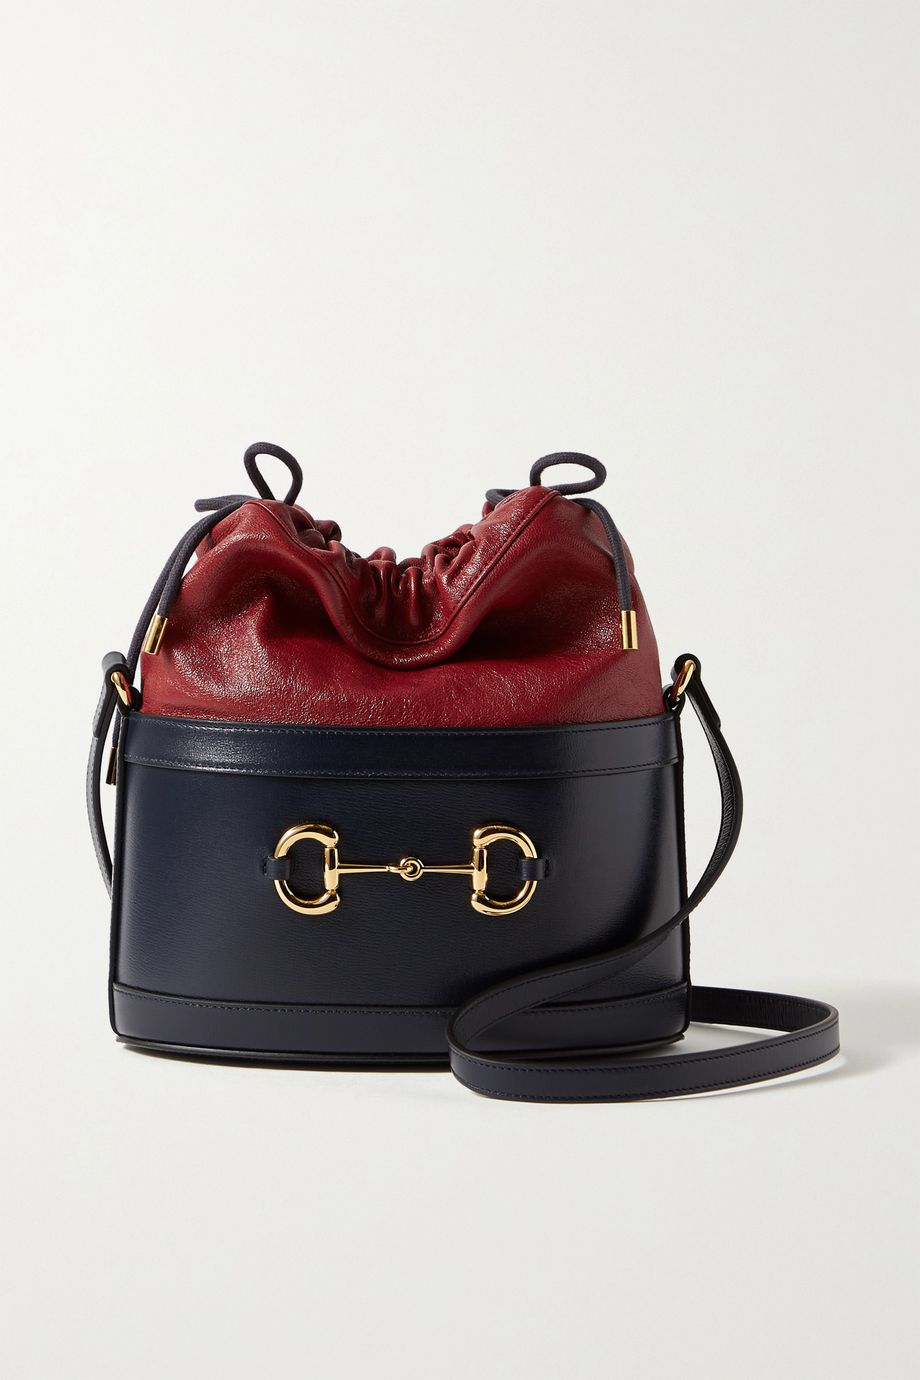 Gucci Morsetto horsebit-detailed two-tone textured-leather bucket bag